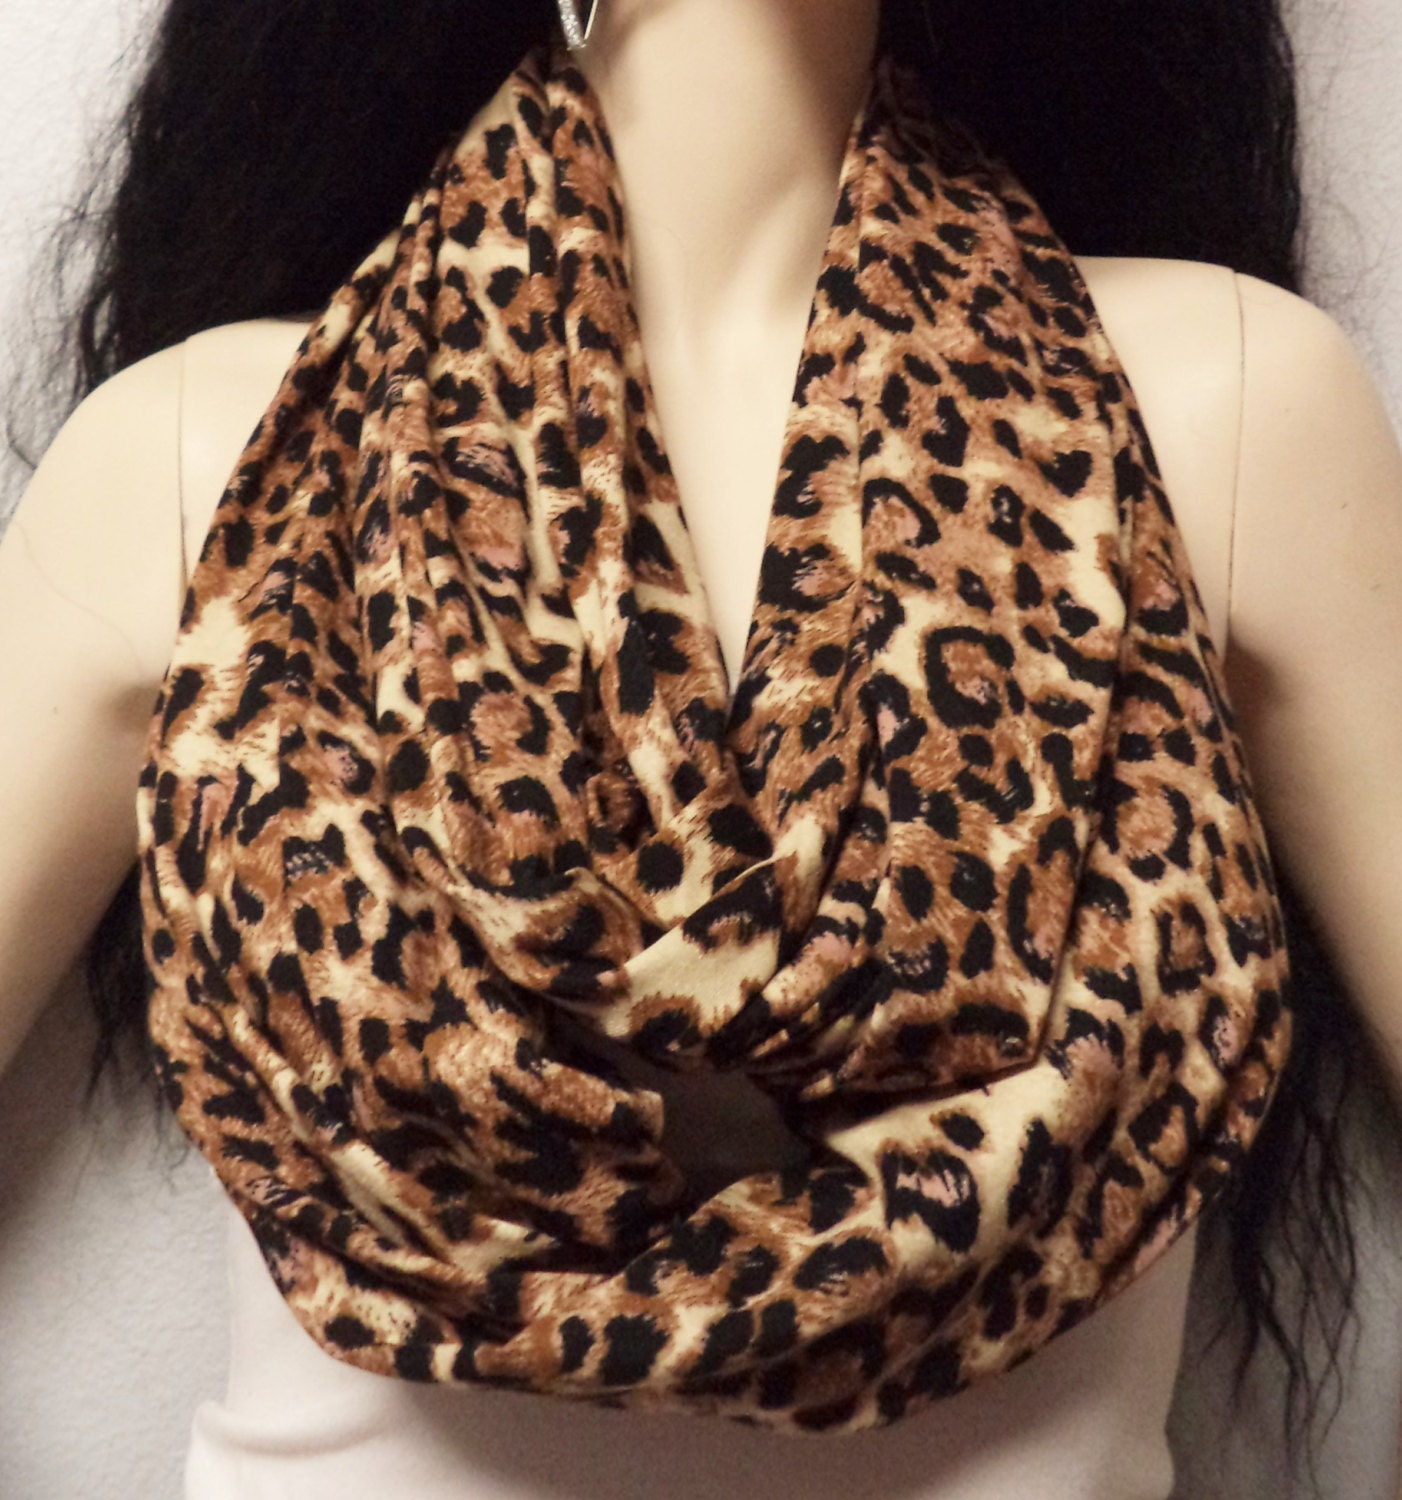 meow leopard print infinity scarf soft jersey knit gift